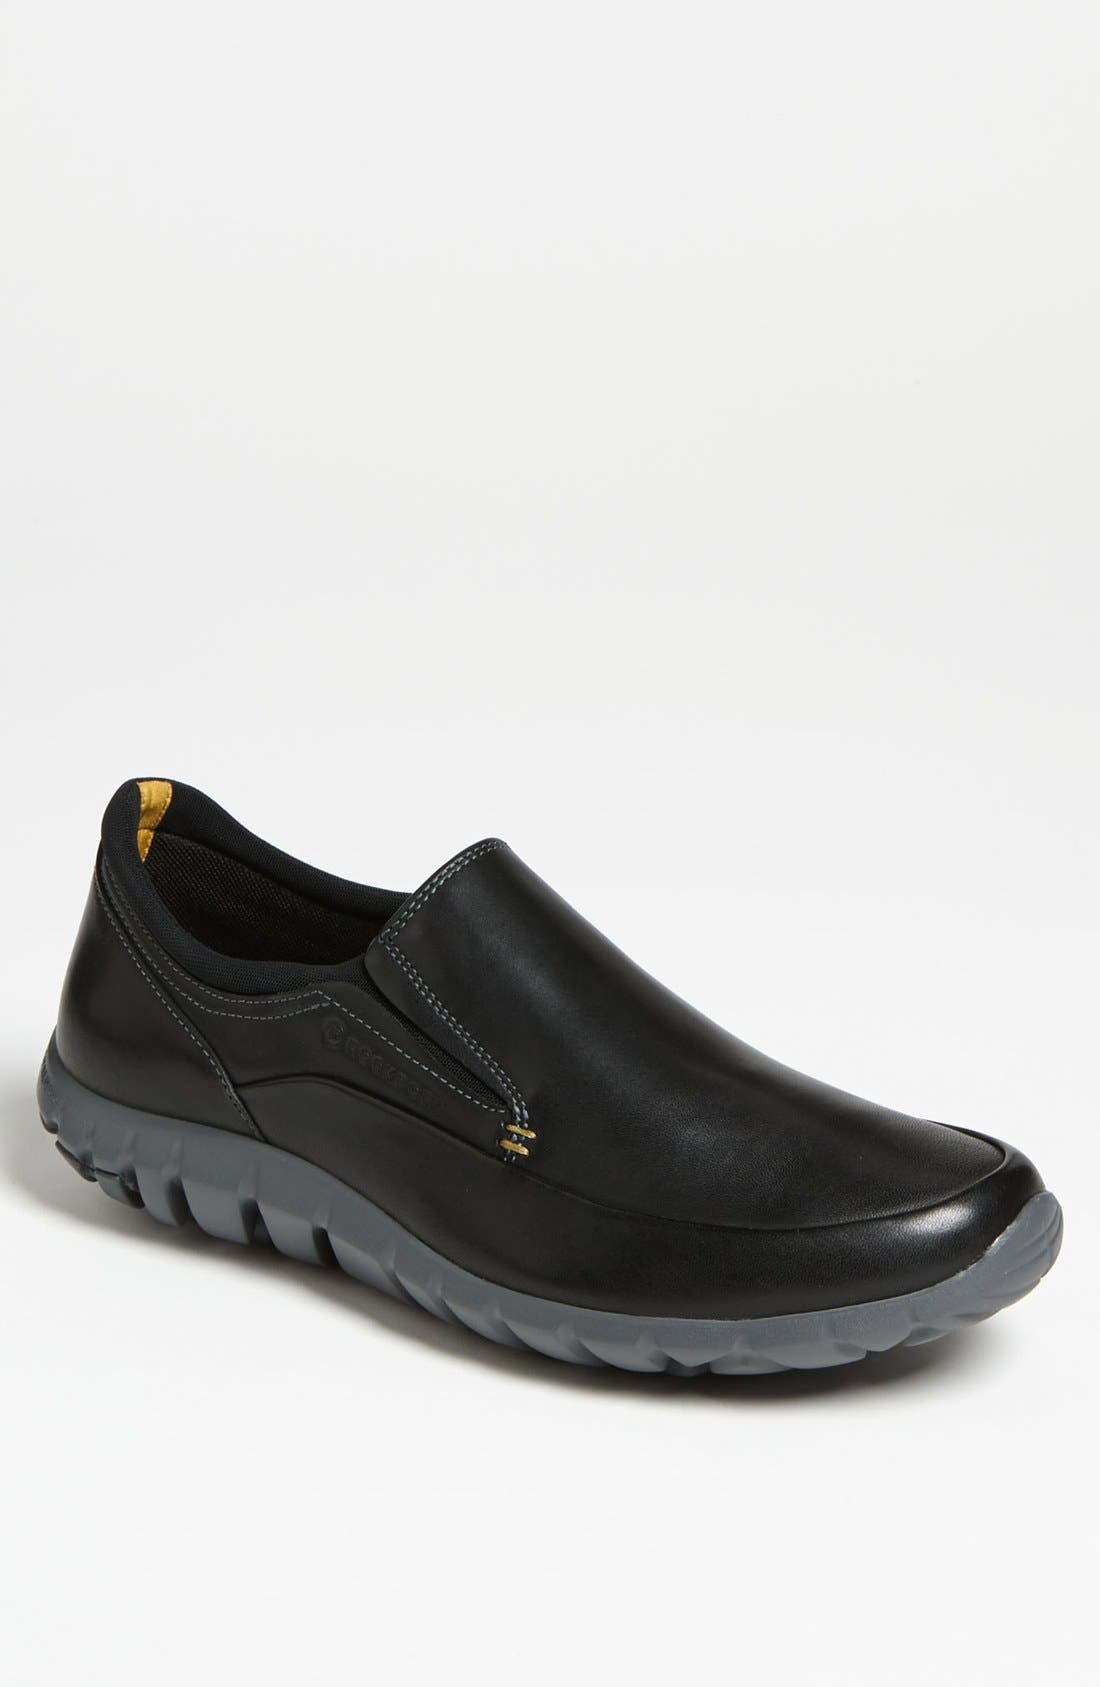 Alternate Image 1 Selected - Rockport 'TruWalk - Zero' Slip-On